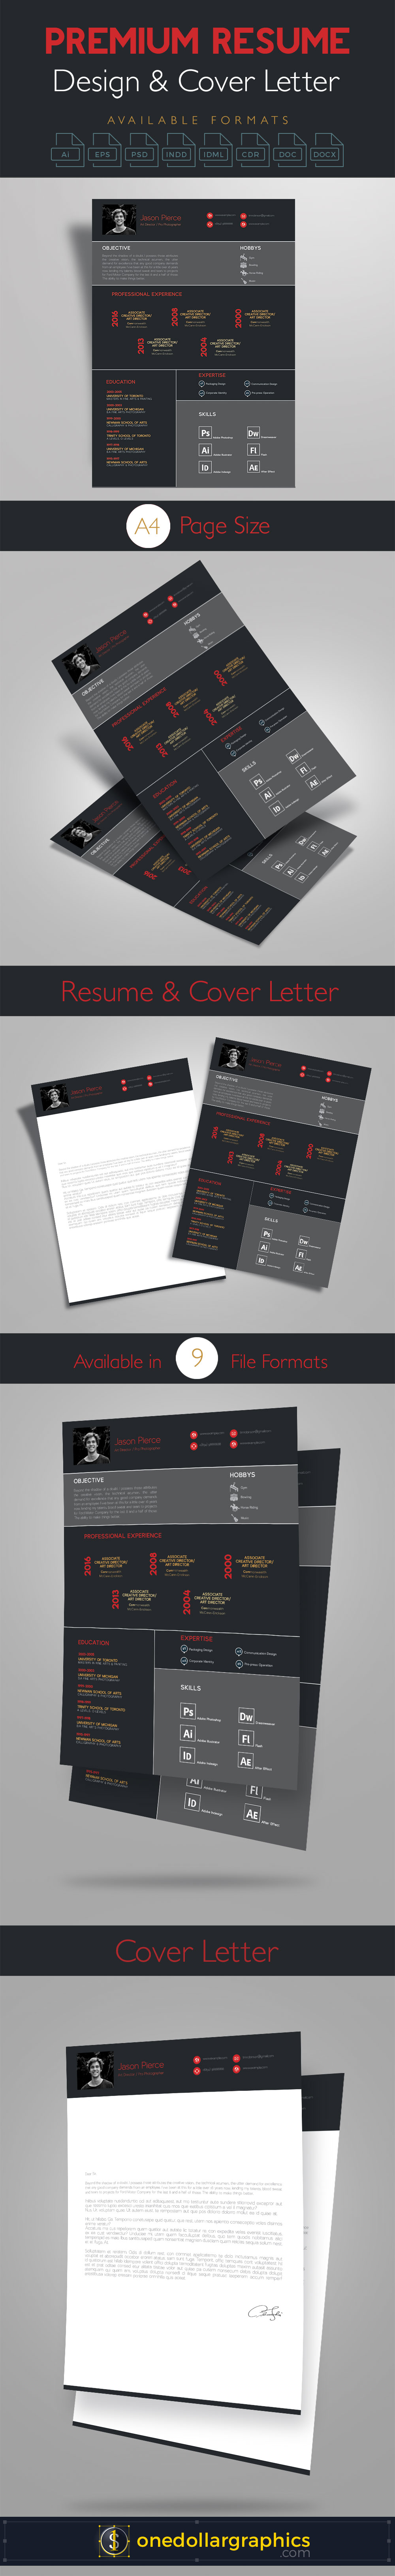 cover letter for sales manager position%0A Premium resume cv design cover letter template   psd mock ups premium resume  cv design cover